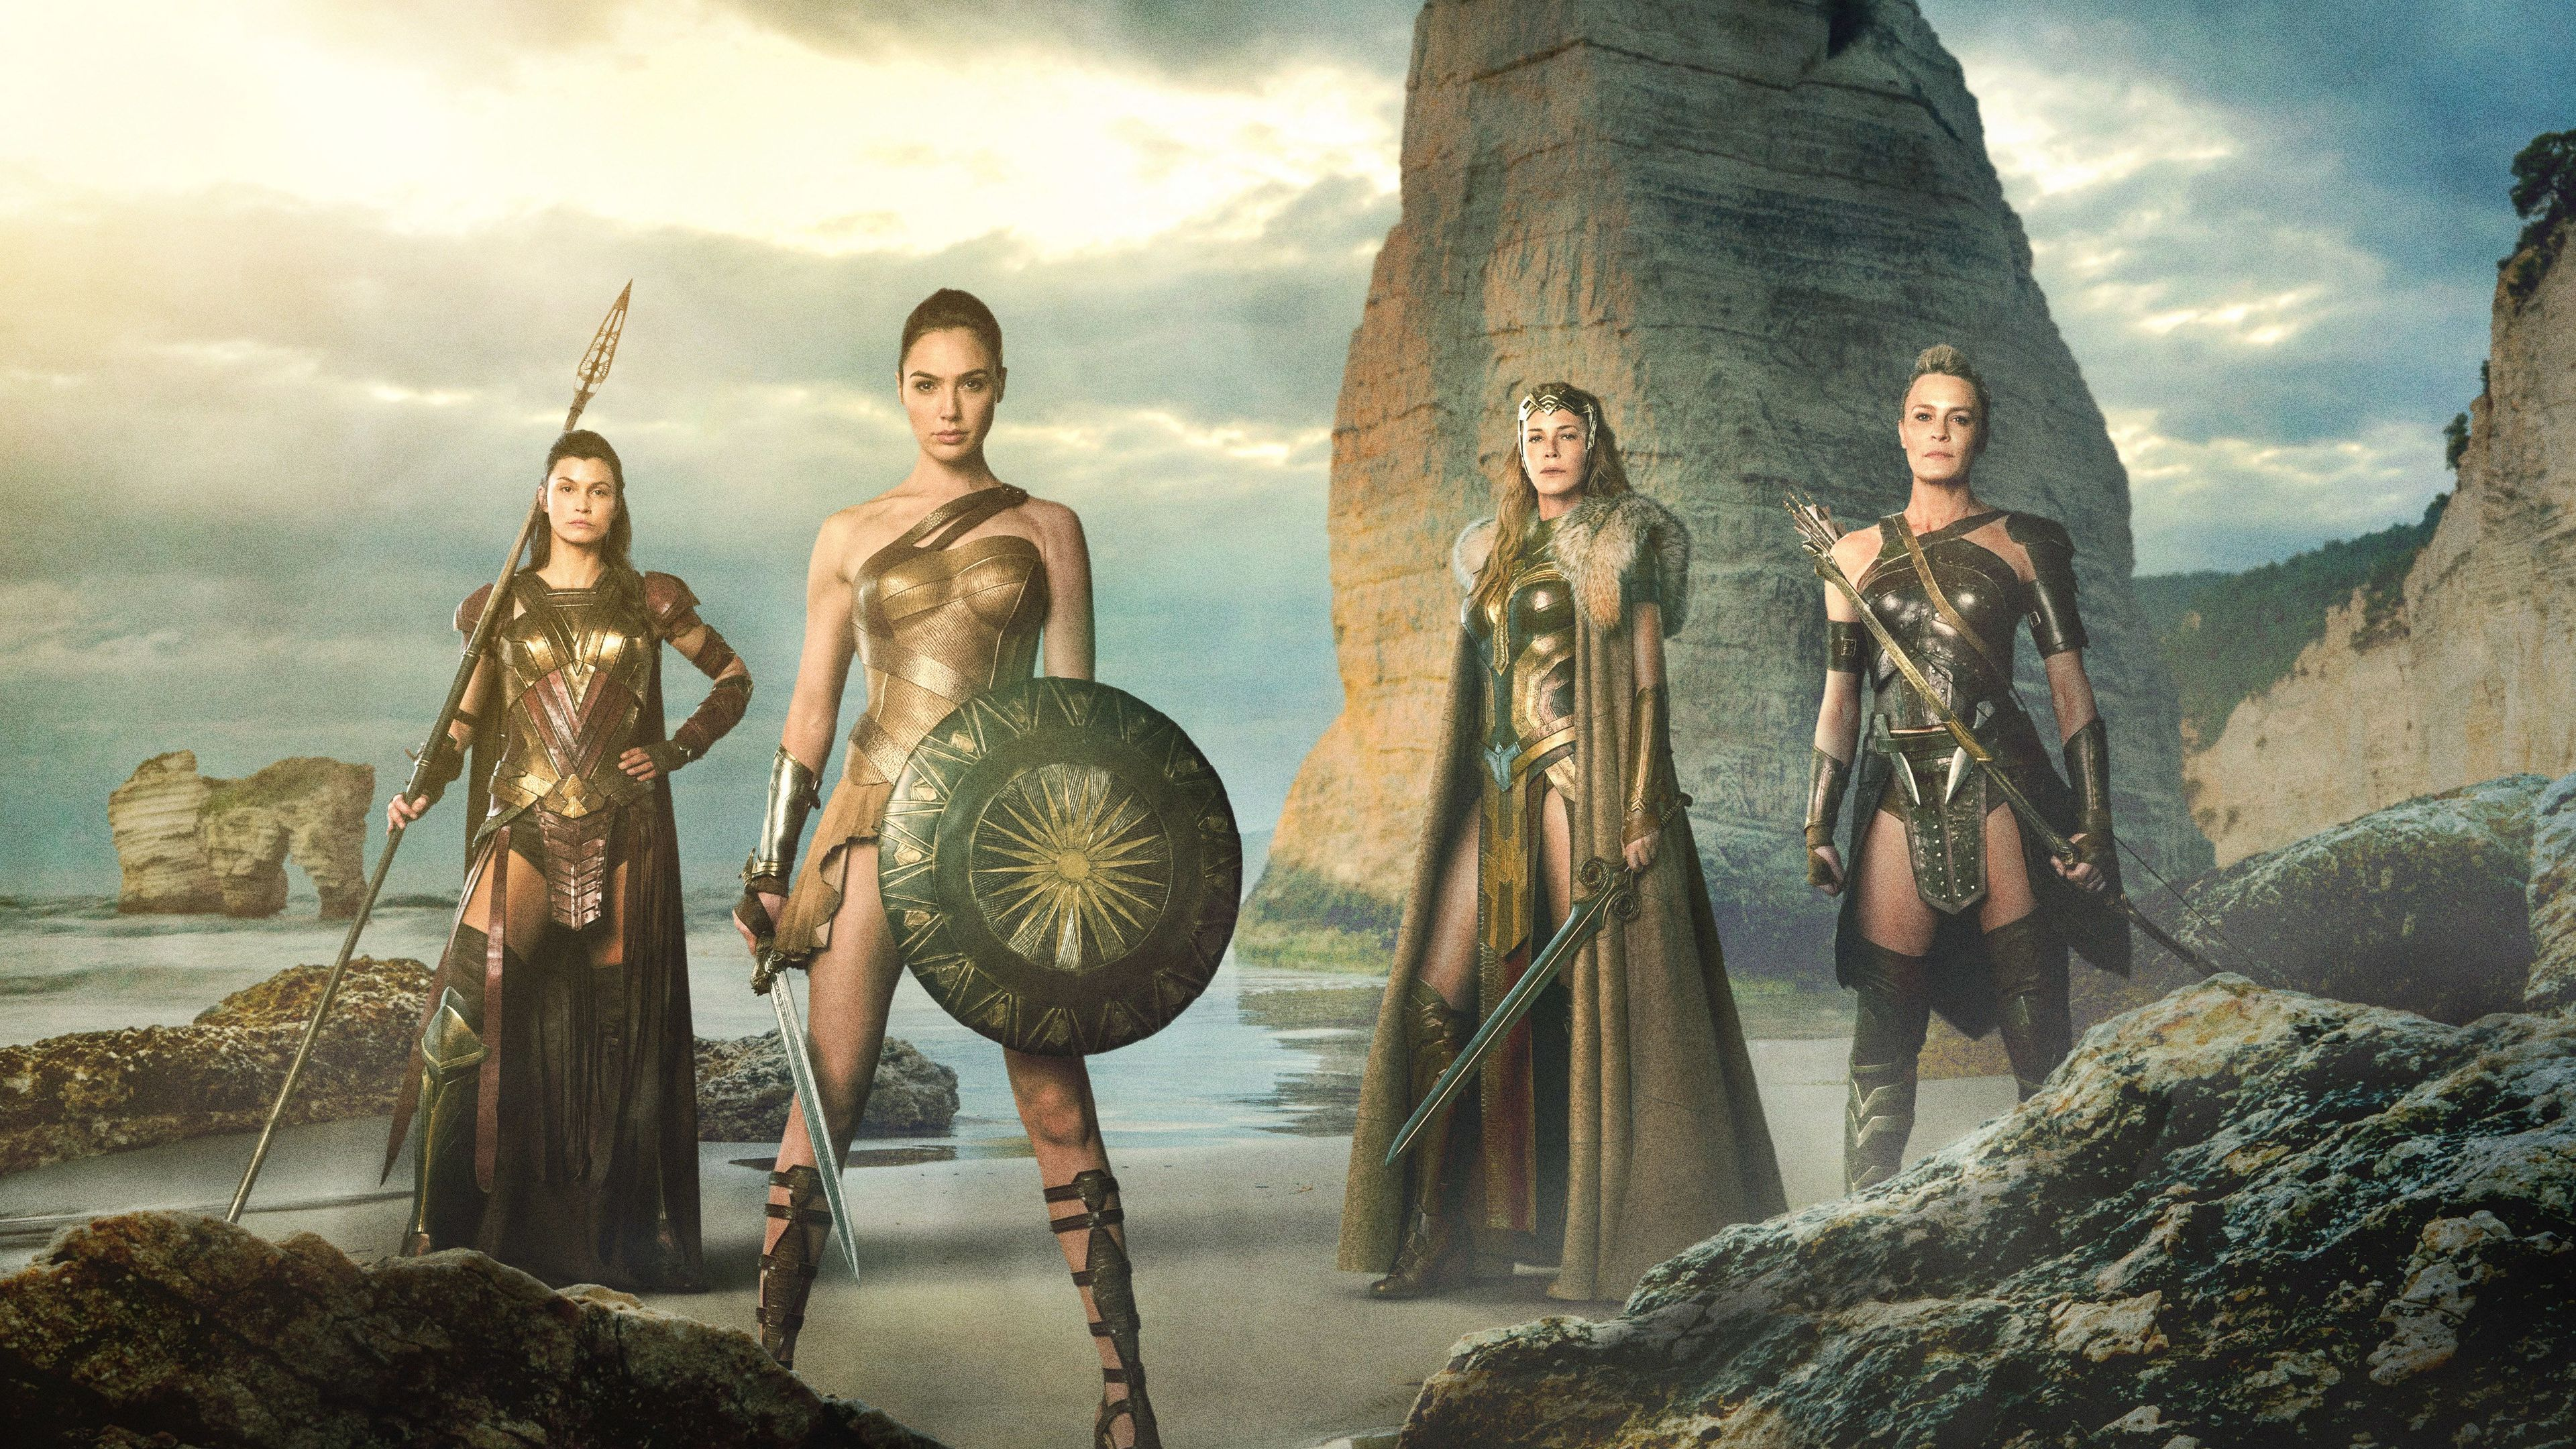 2017 wonder woman movie 1536364038 - 2017 Wonder Woman Movie - wonder woman wallpapers, super heroes wallpapers, movies wallpapers, 2017 movies wallpapers